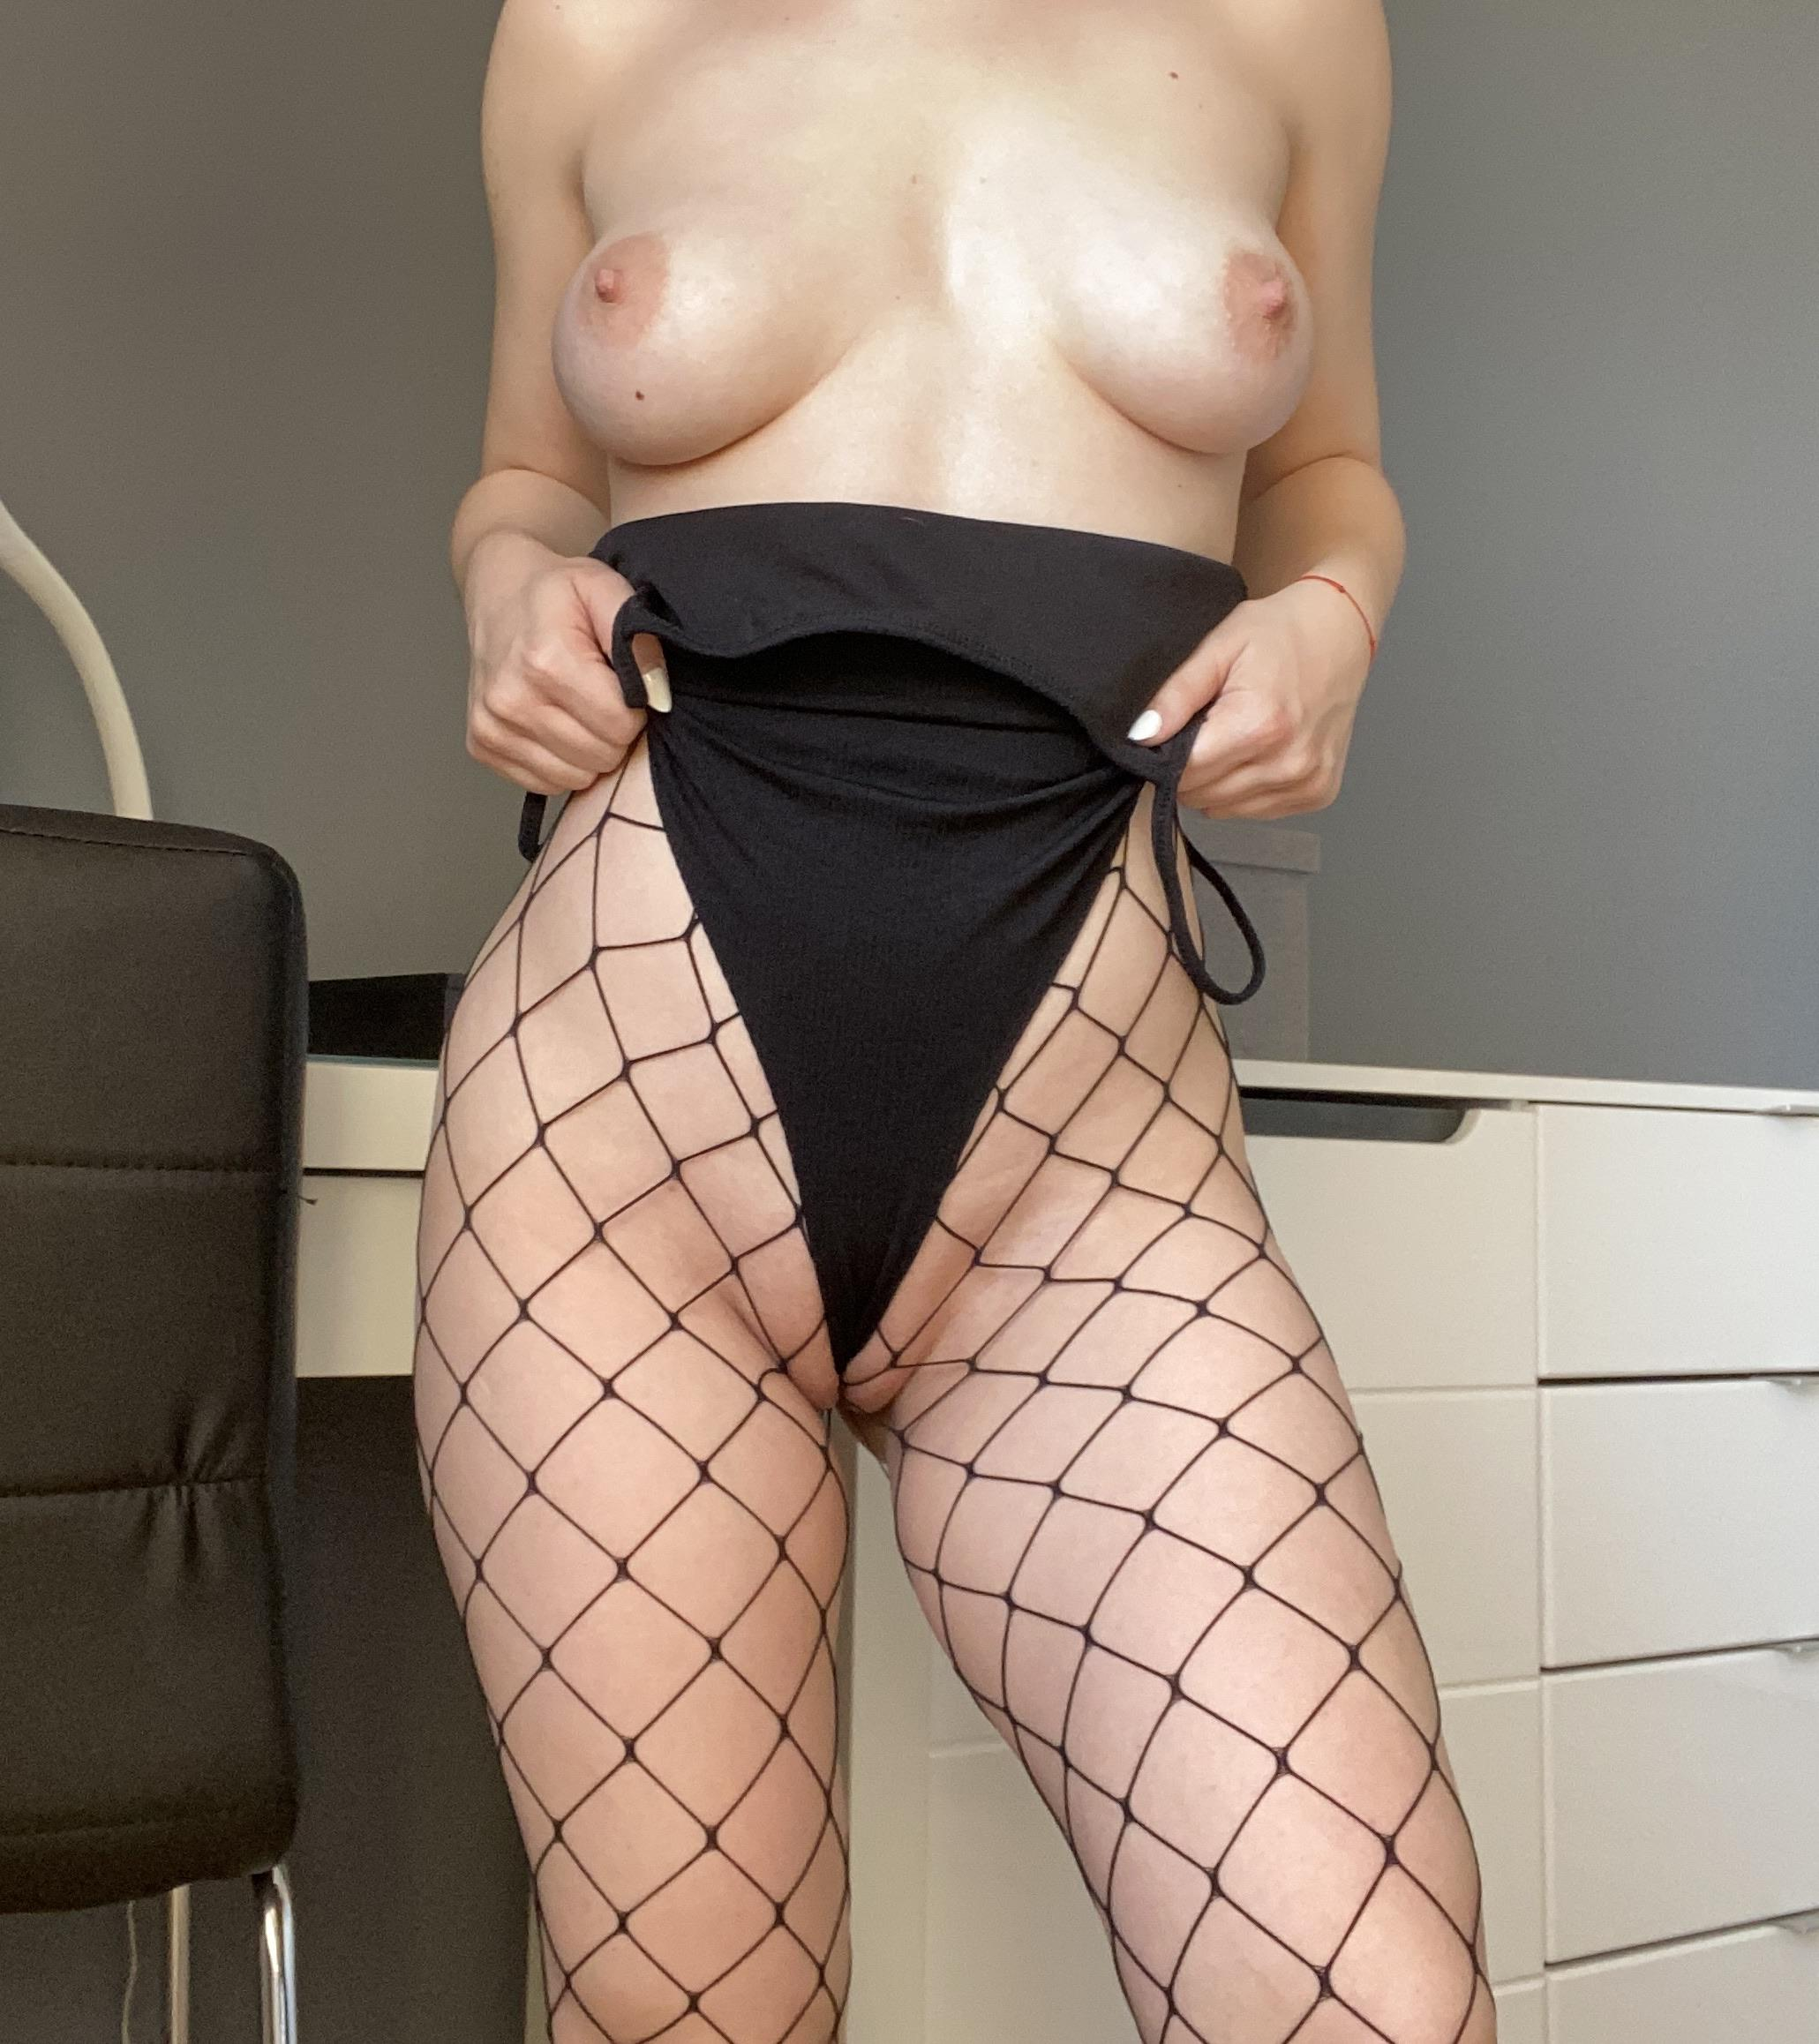 Would You Like To Fuck Me Through The Holes Of My Tights?